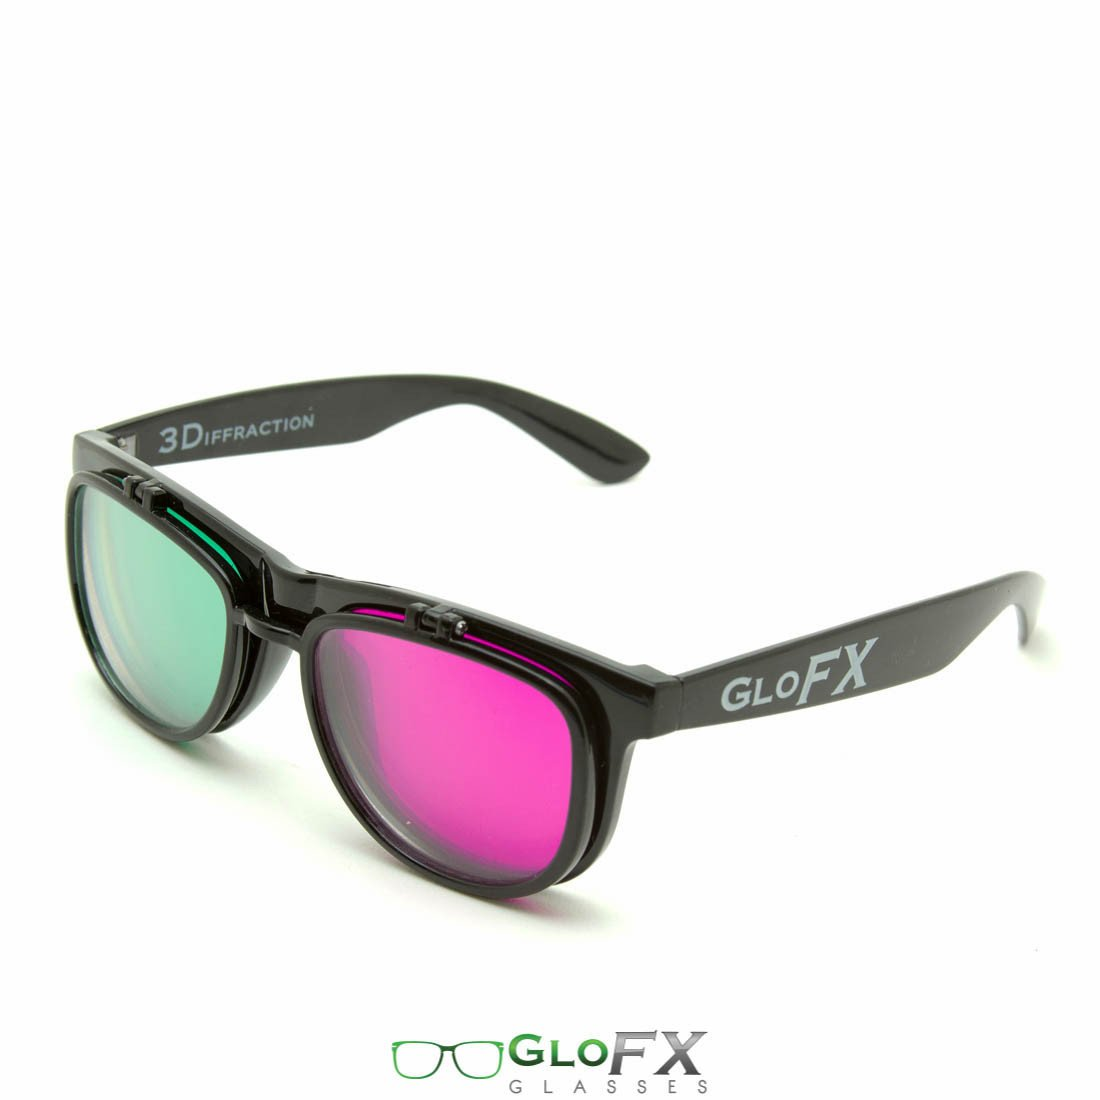 GloFX Flip 3Diffraction Glasses- Black - Rave Rebel